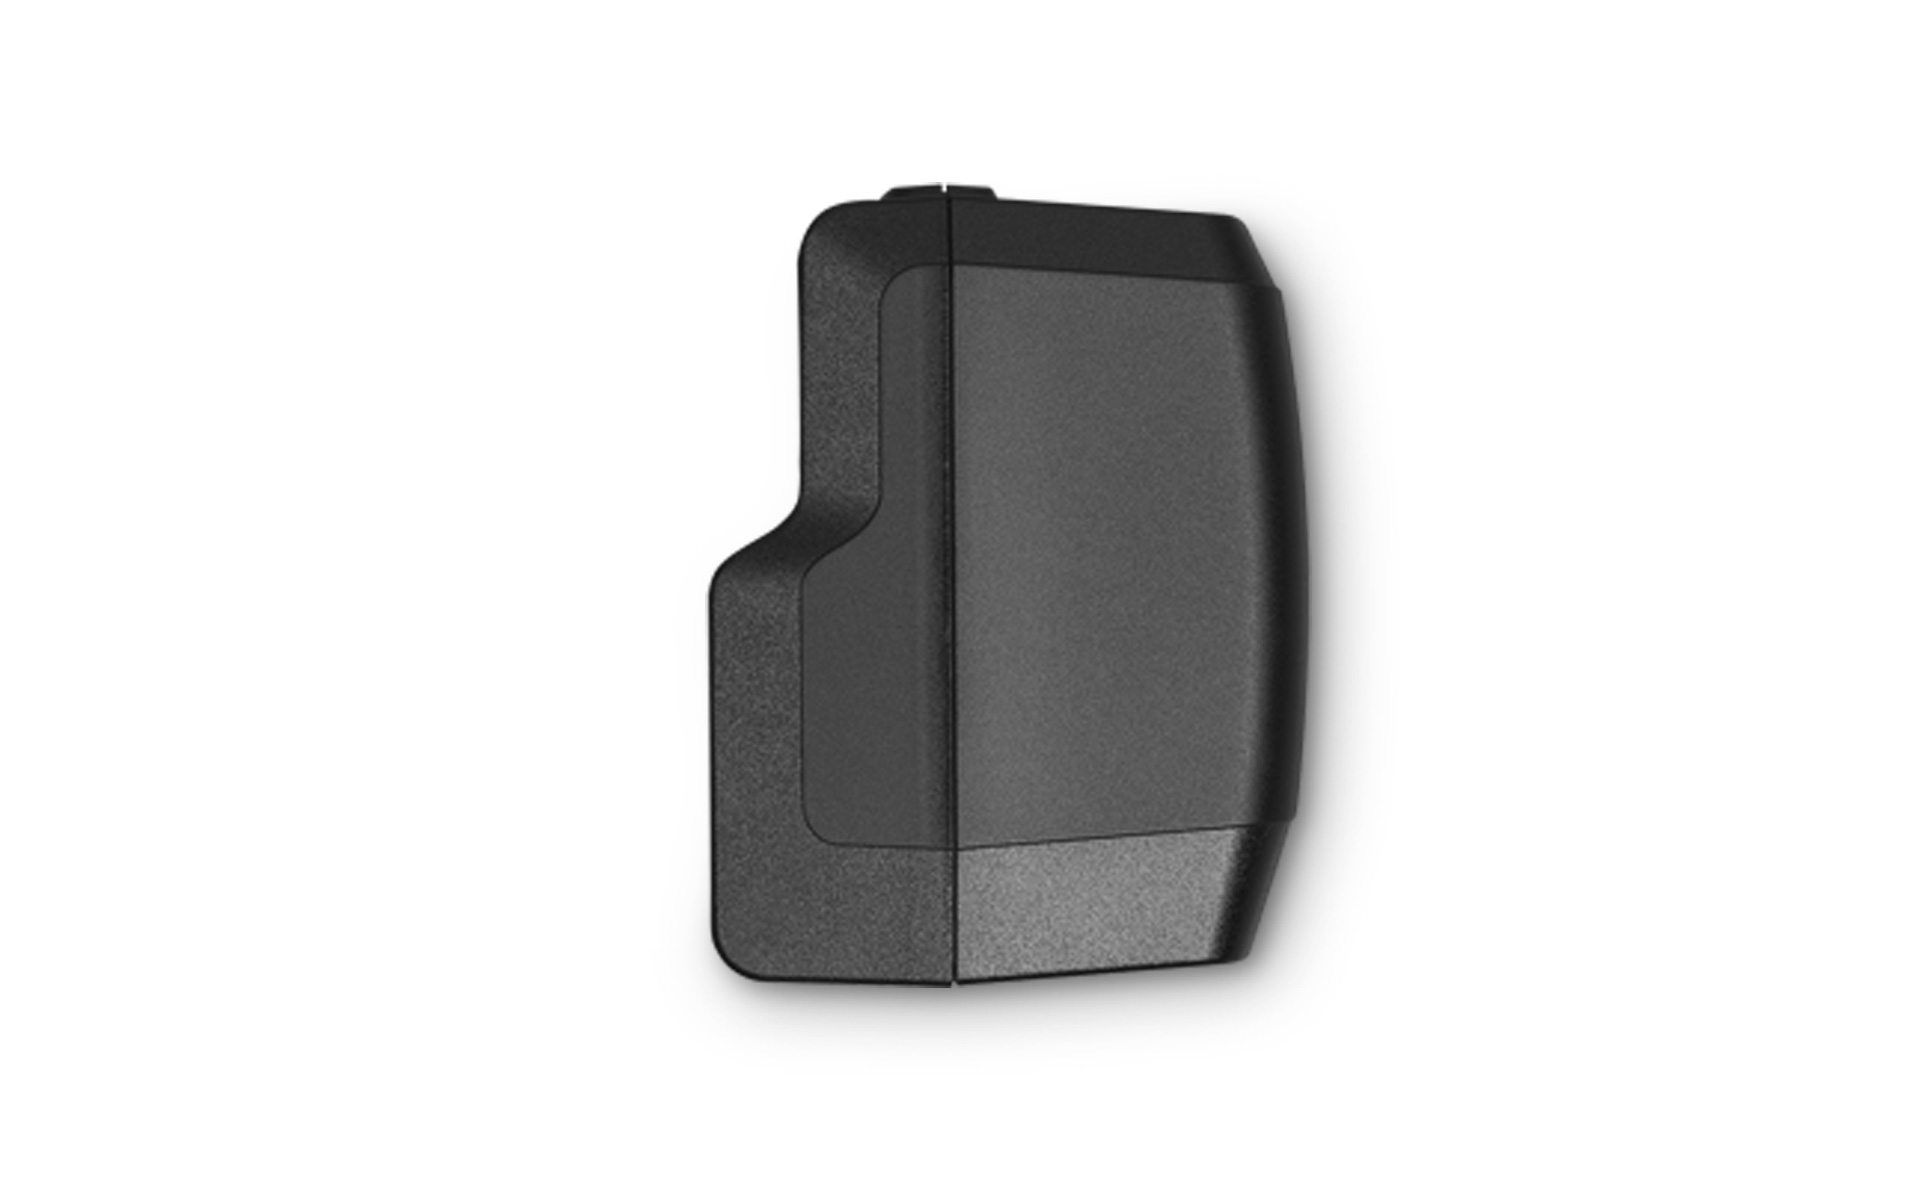 Wacom One 13 Pen Display Power Adapter